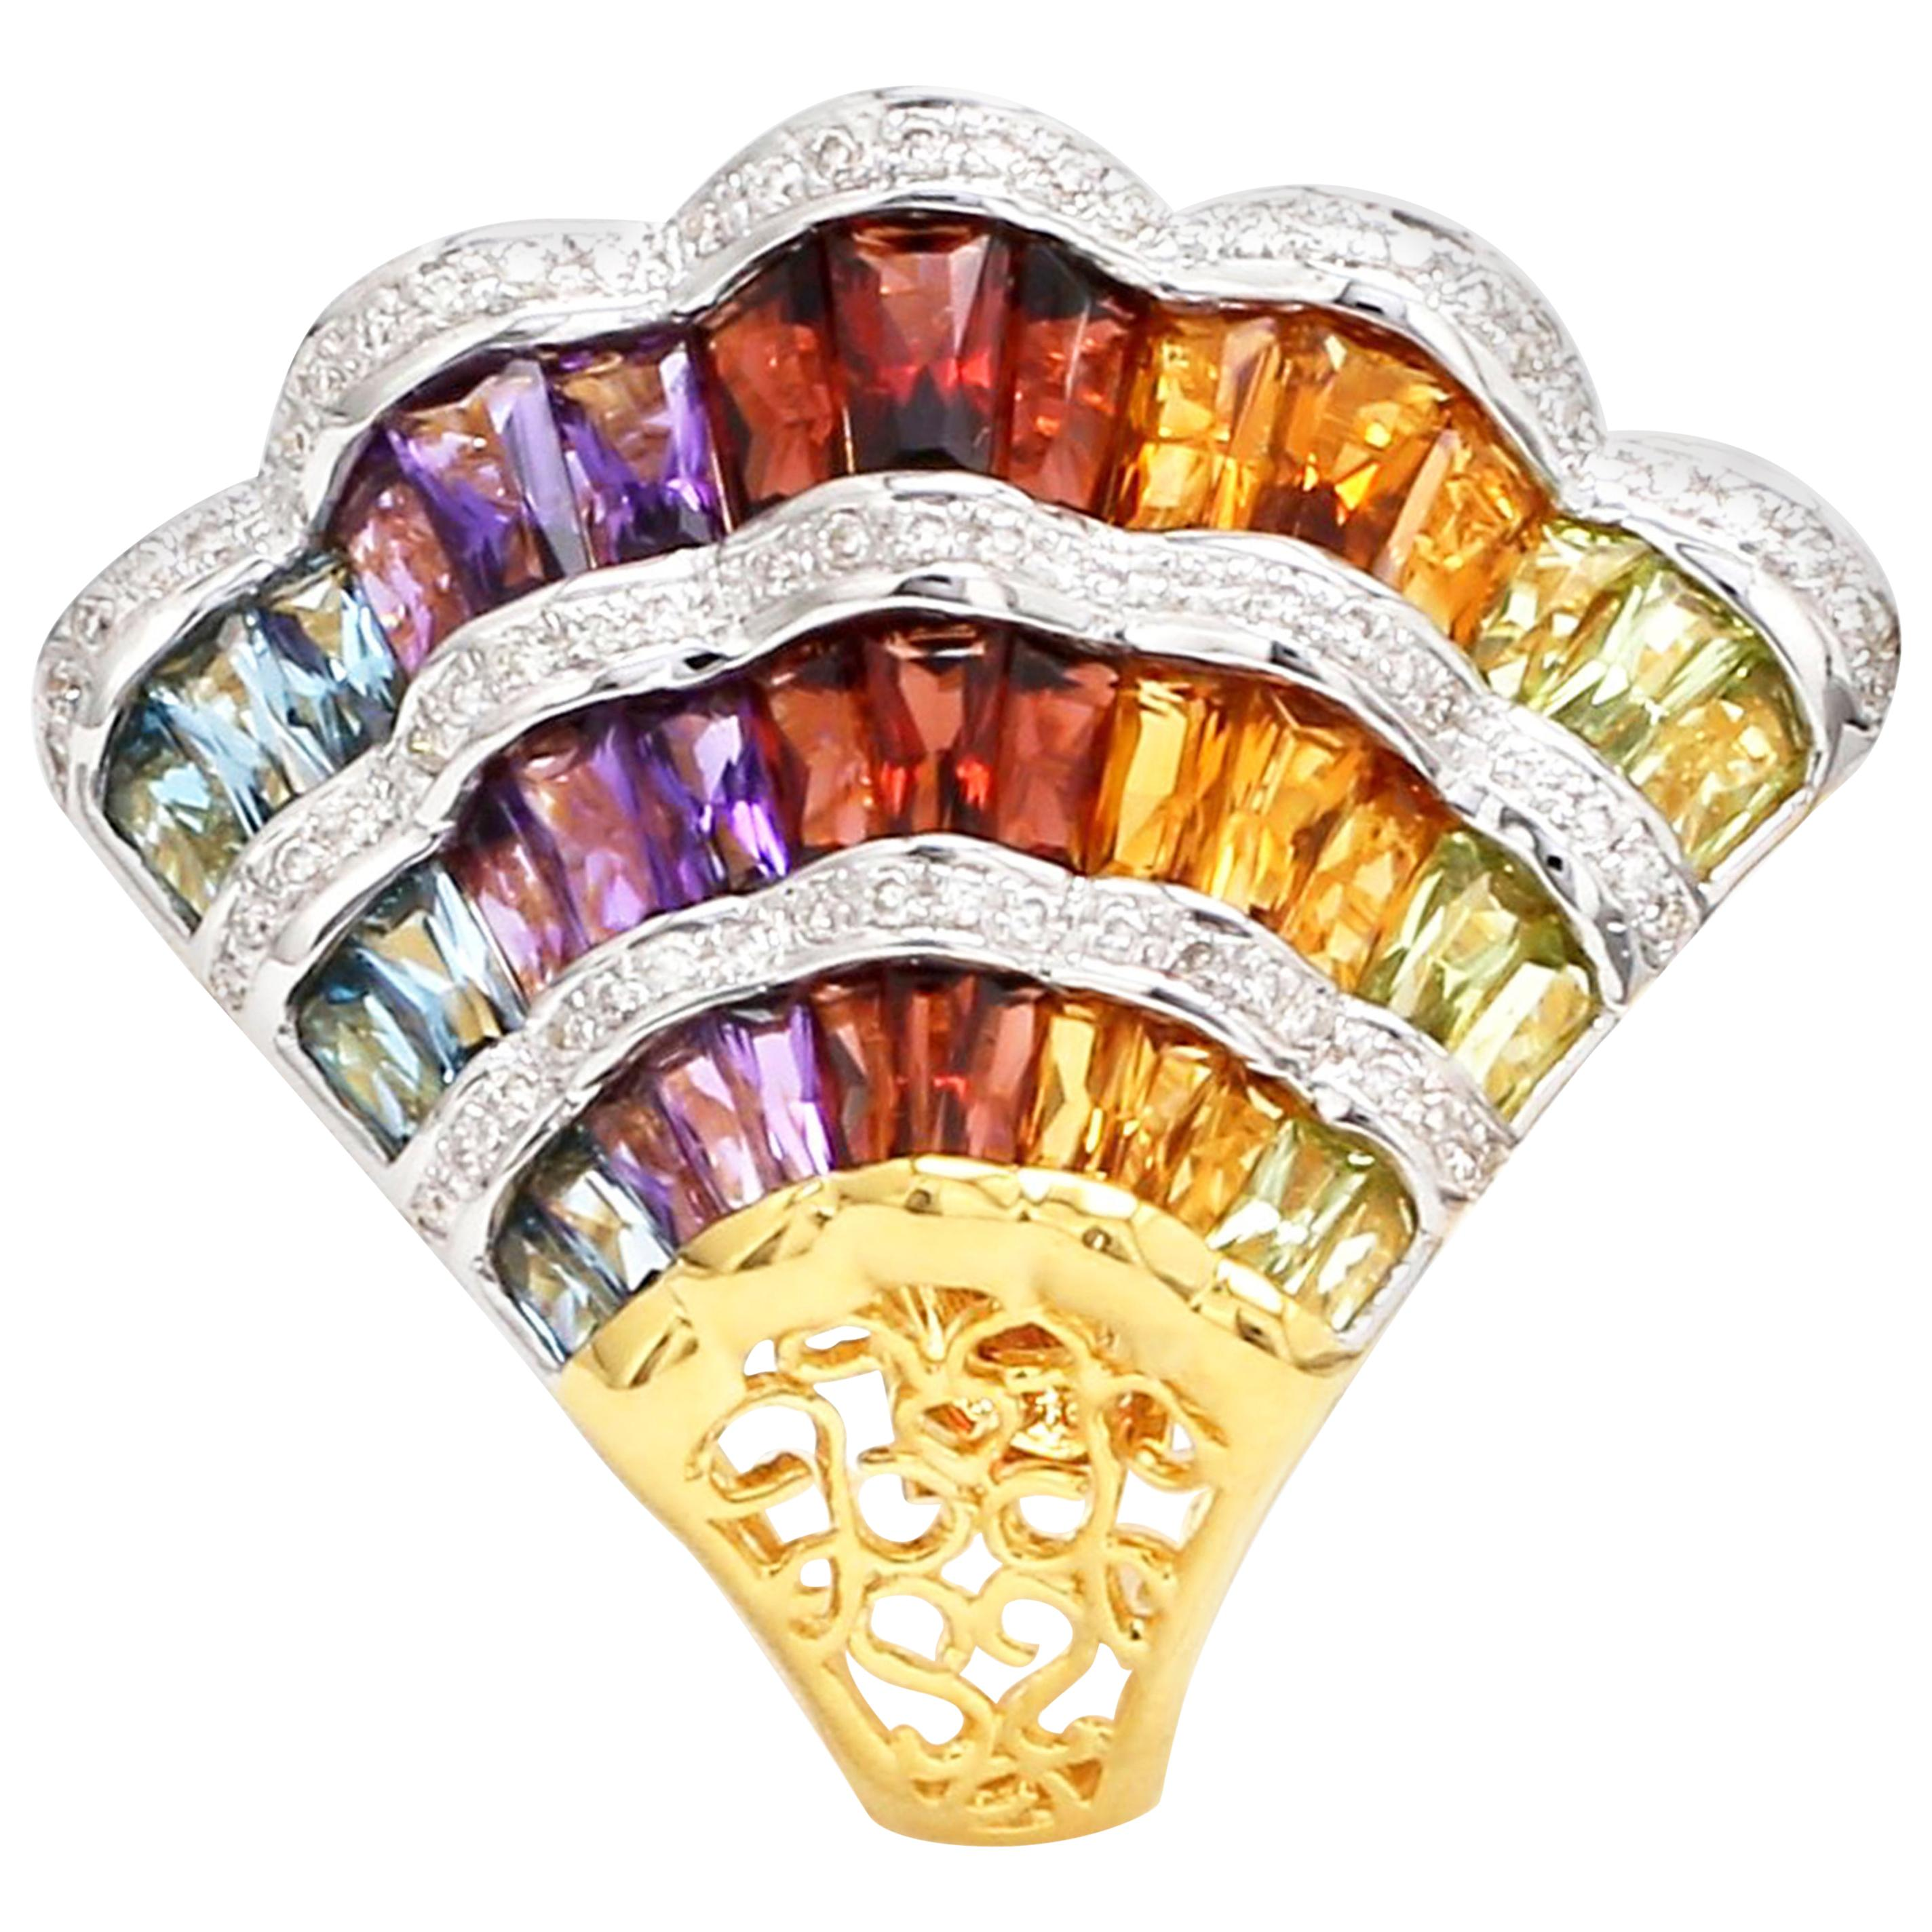 18K Gold Topaz Amethyst Garnet Citrine Peridot Multi-Color Rainbow Cocktail Ring